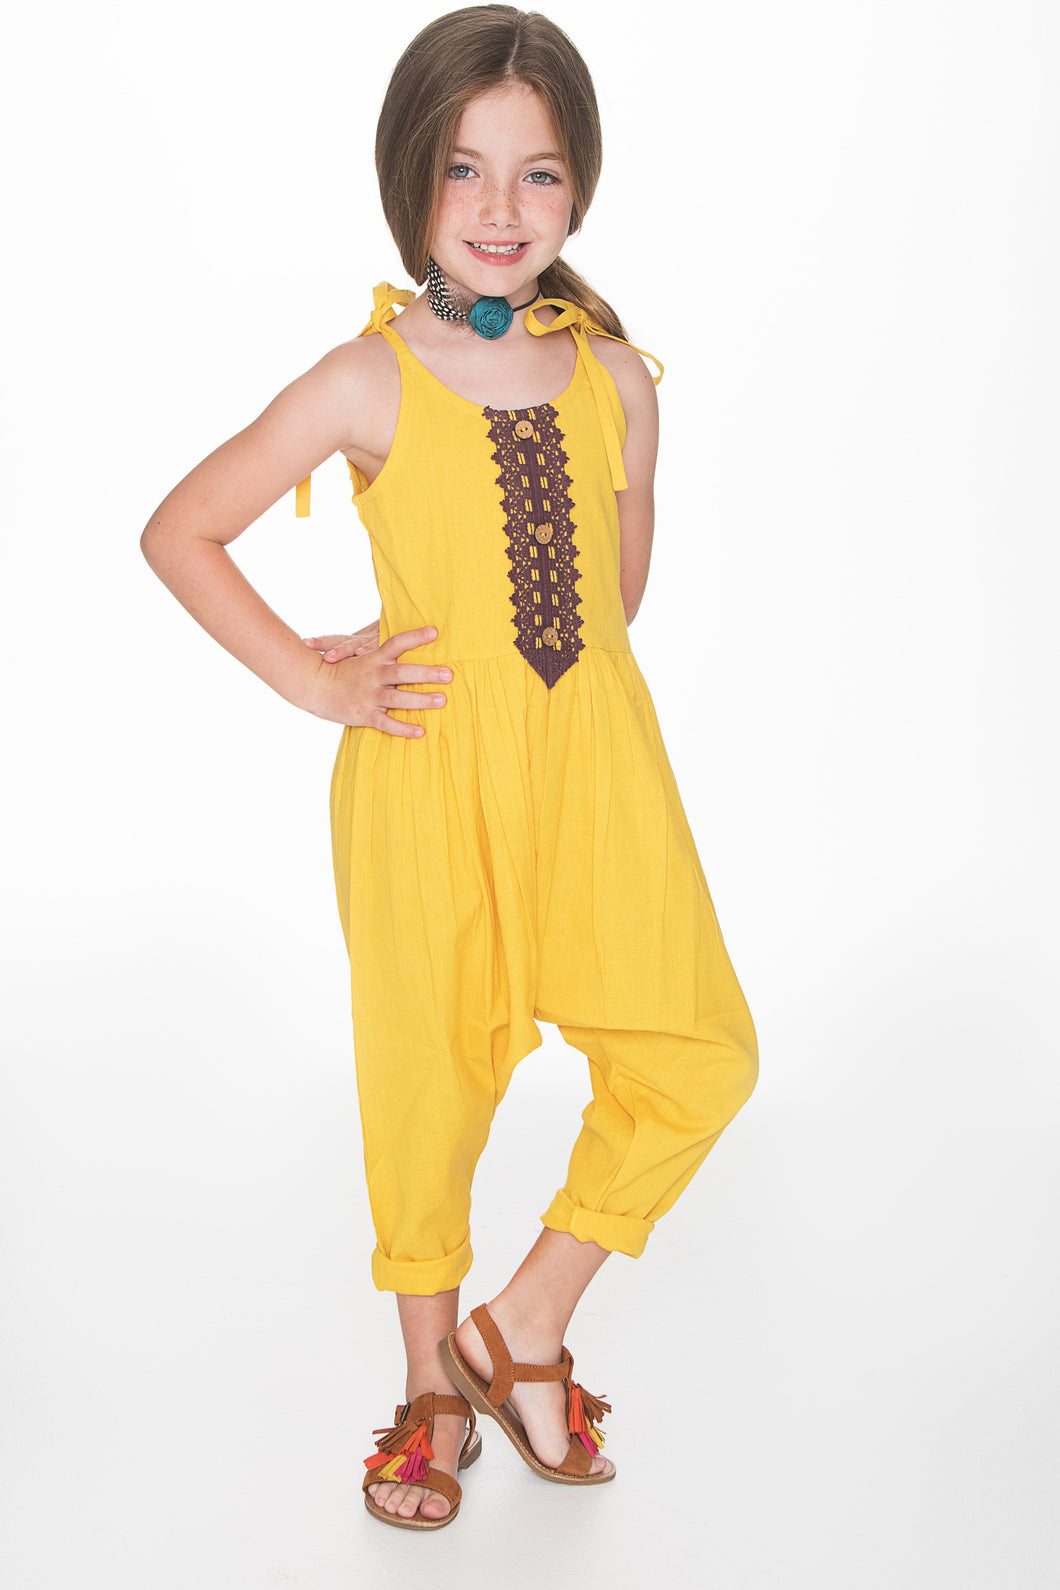 Yellow Jumpsuit with Lace Detail - Kids Clothing, Dress - Girls Dress, Yo Baby Online - Yo Baby